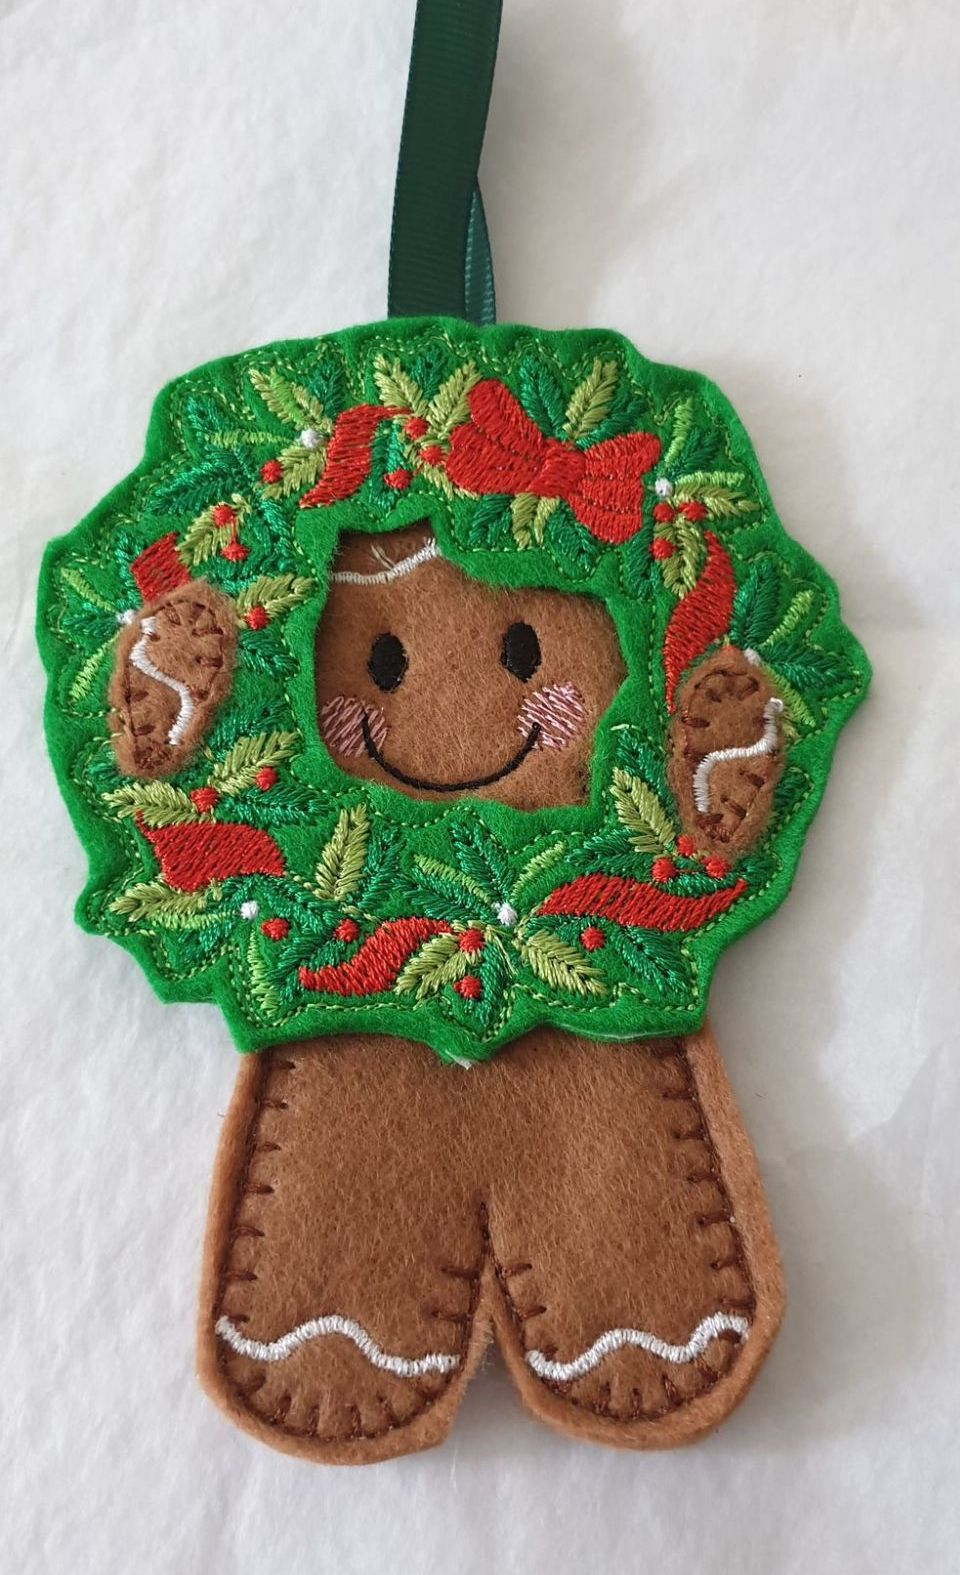 Looking through the Christmas Wreath Gingerbread